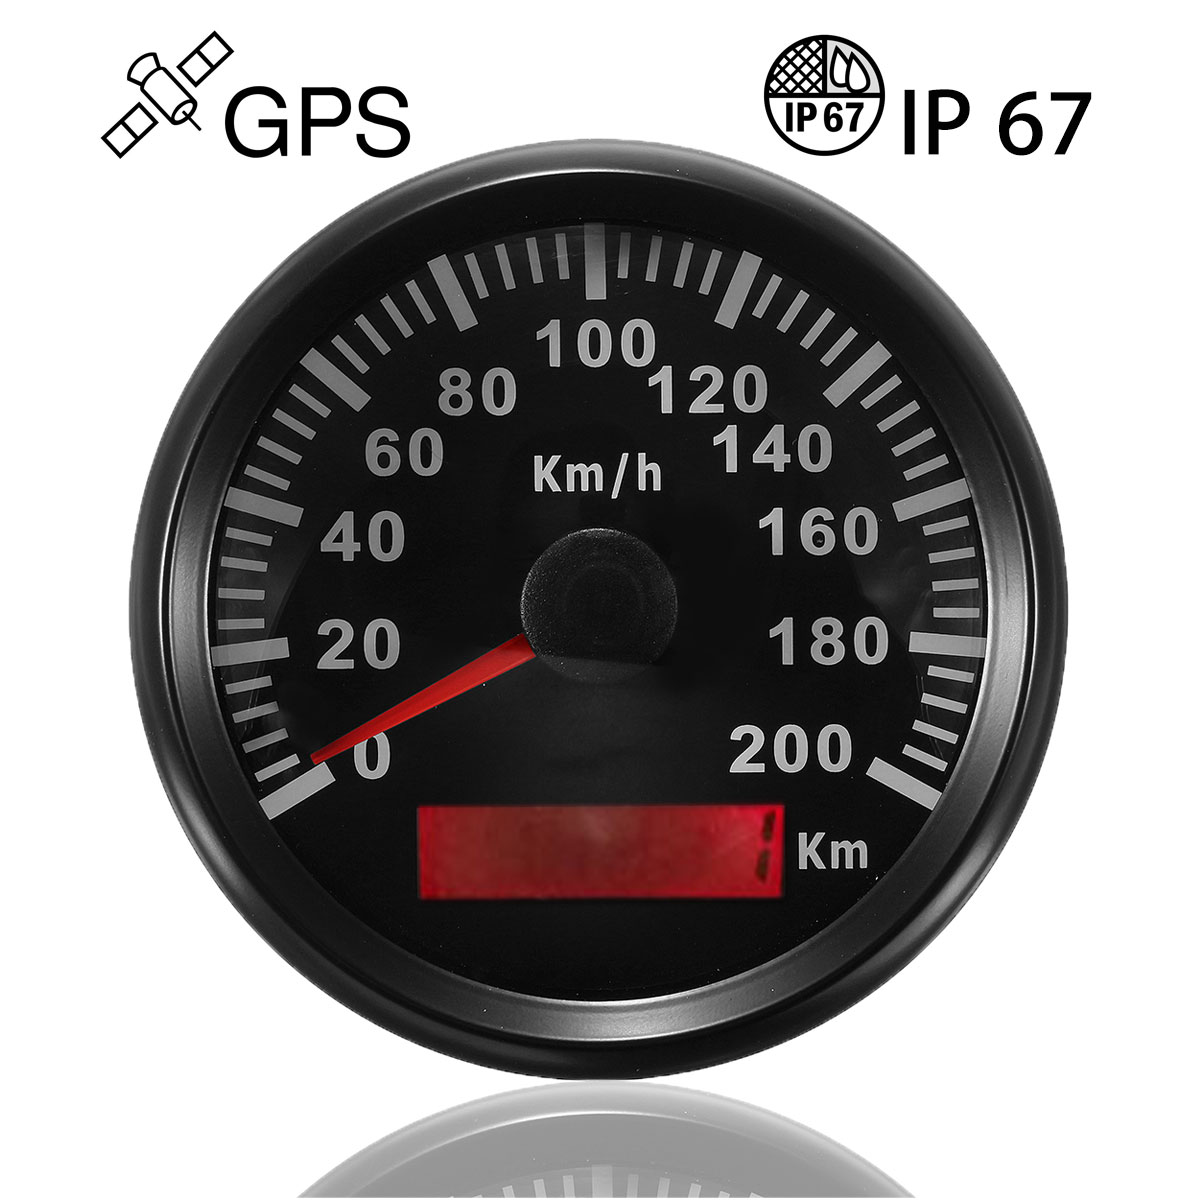 85mm 200 km h stainless gps speedometer waterproof digital gauges car motorcucle alex nld. Black Bedroom Furniture Sets. Home Design Ideas